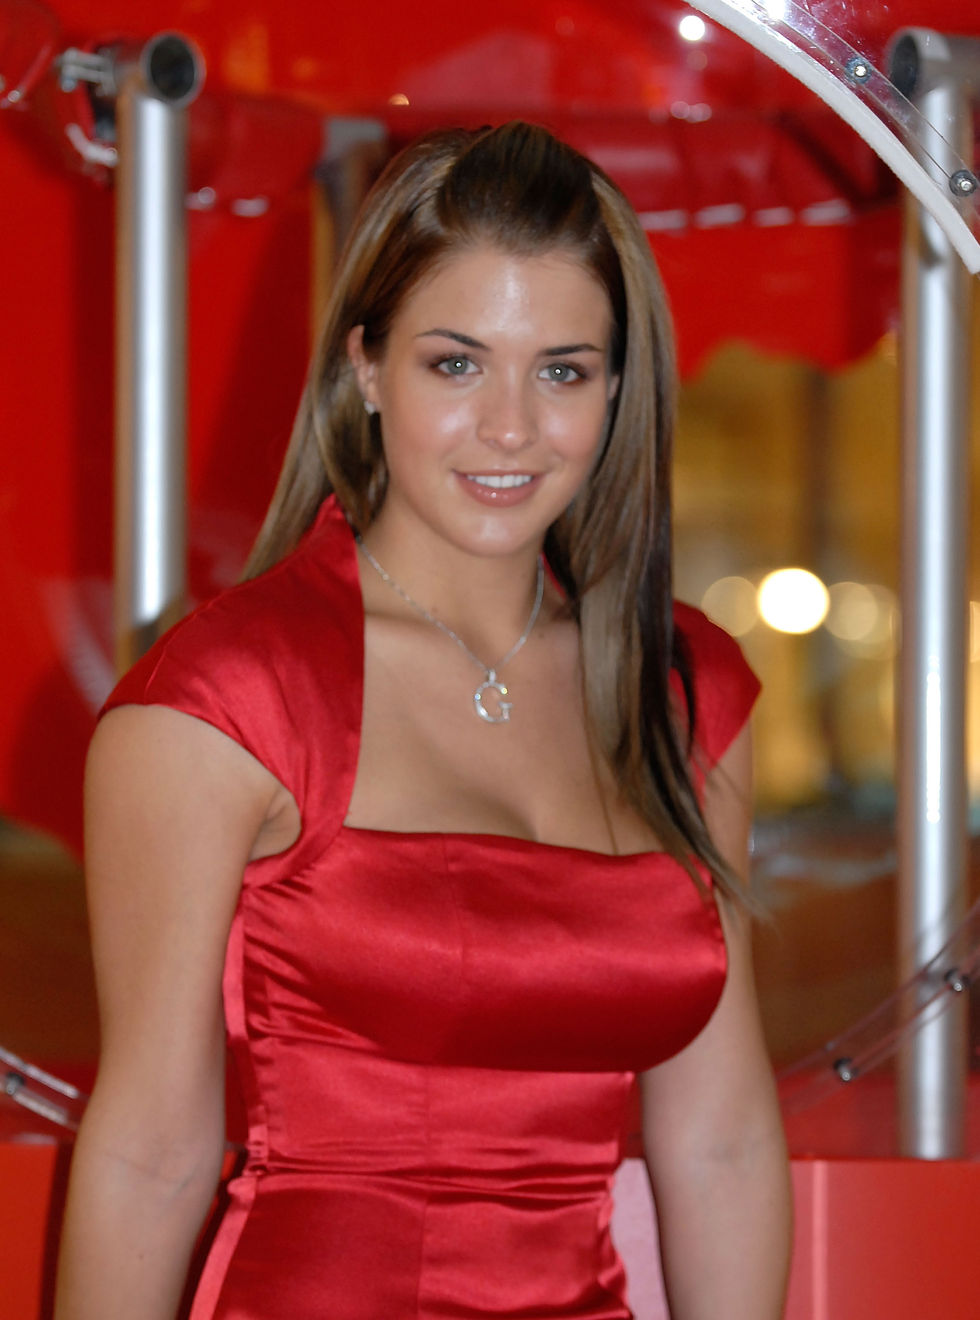 gemma-atkinson-launches-the-great-holiday-grab-experience-01